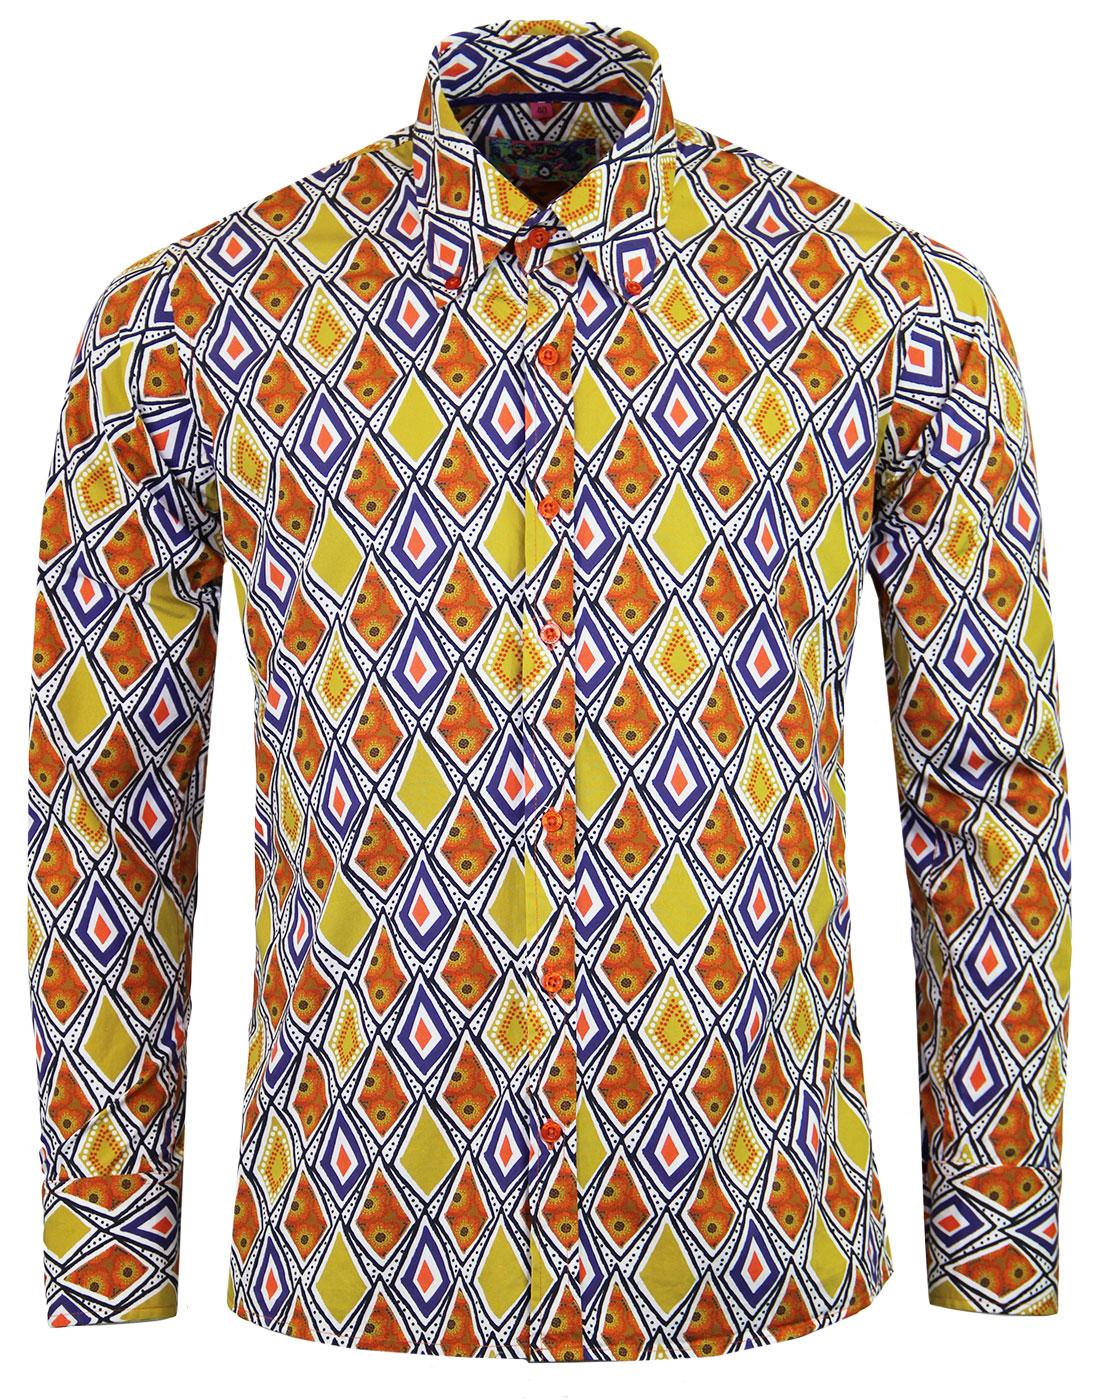 madcap england tribal trip 60s mod diamond shirt